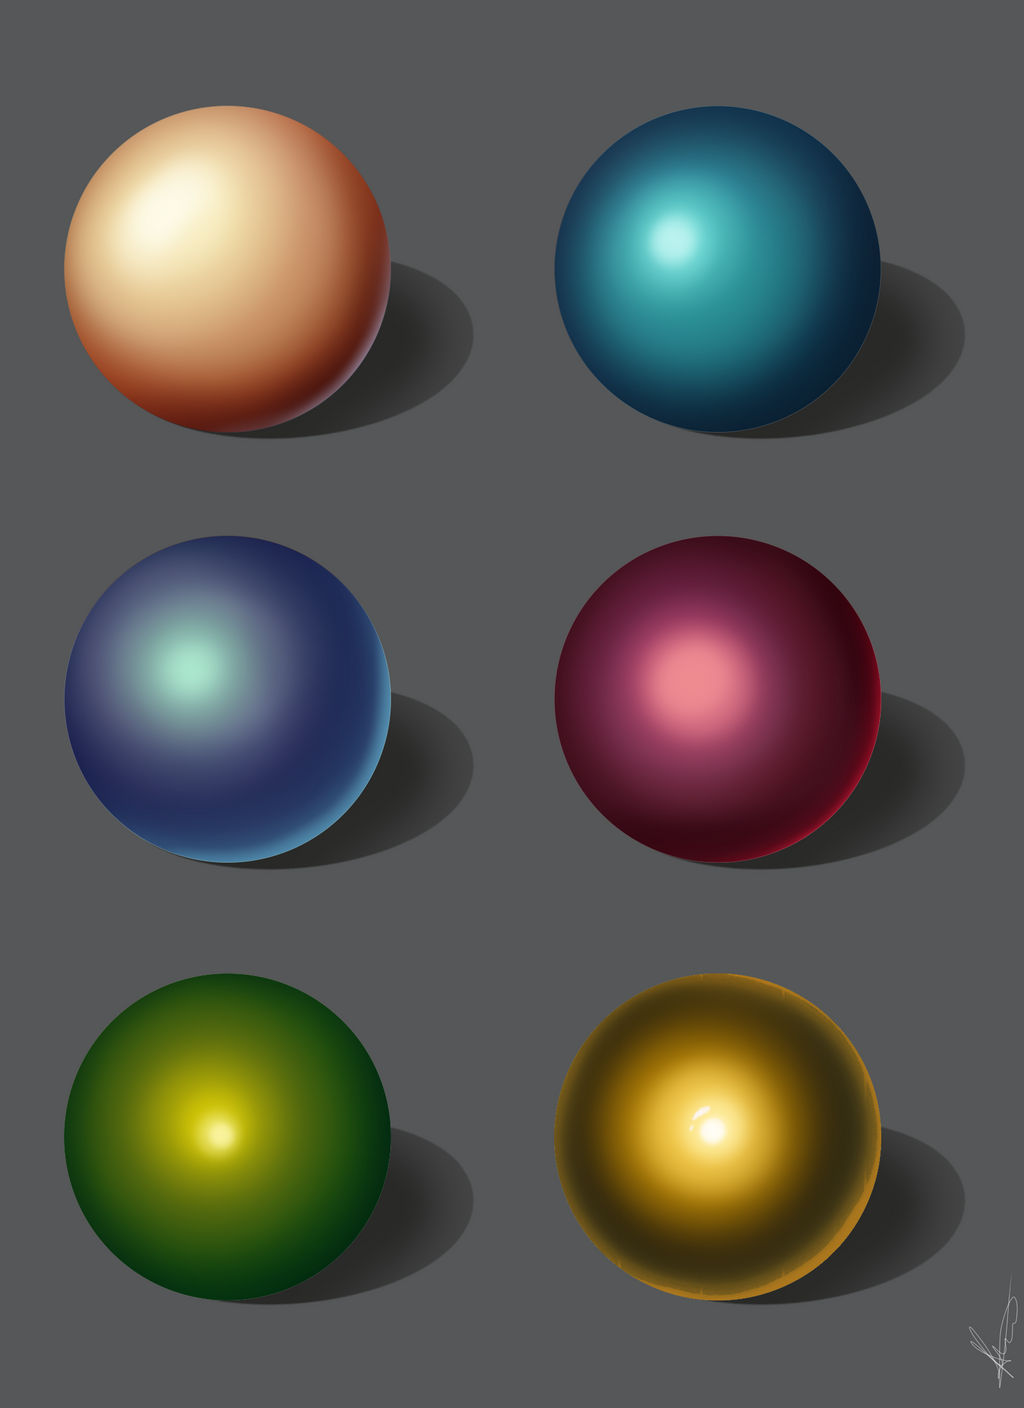 Color and shading study